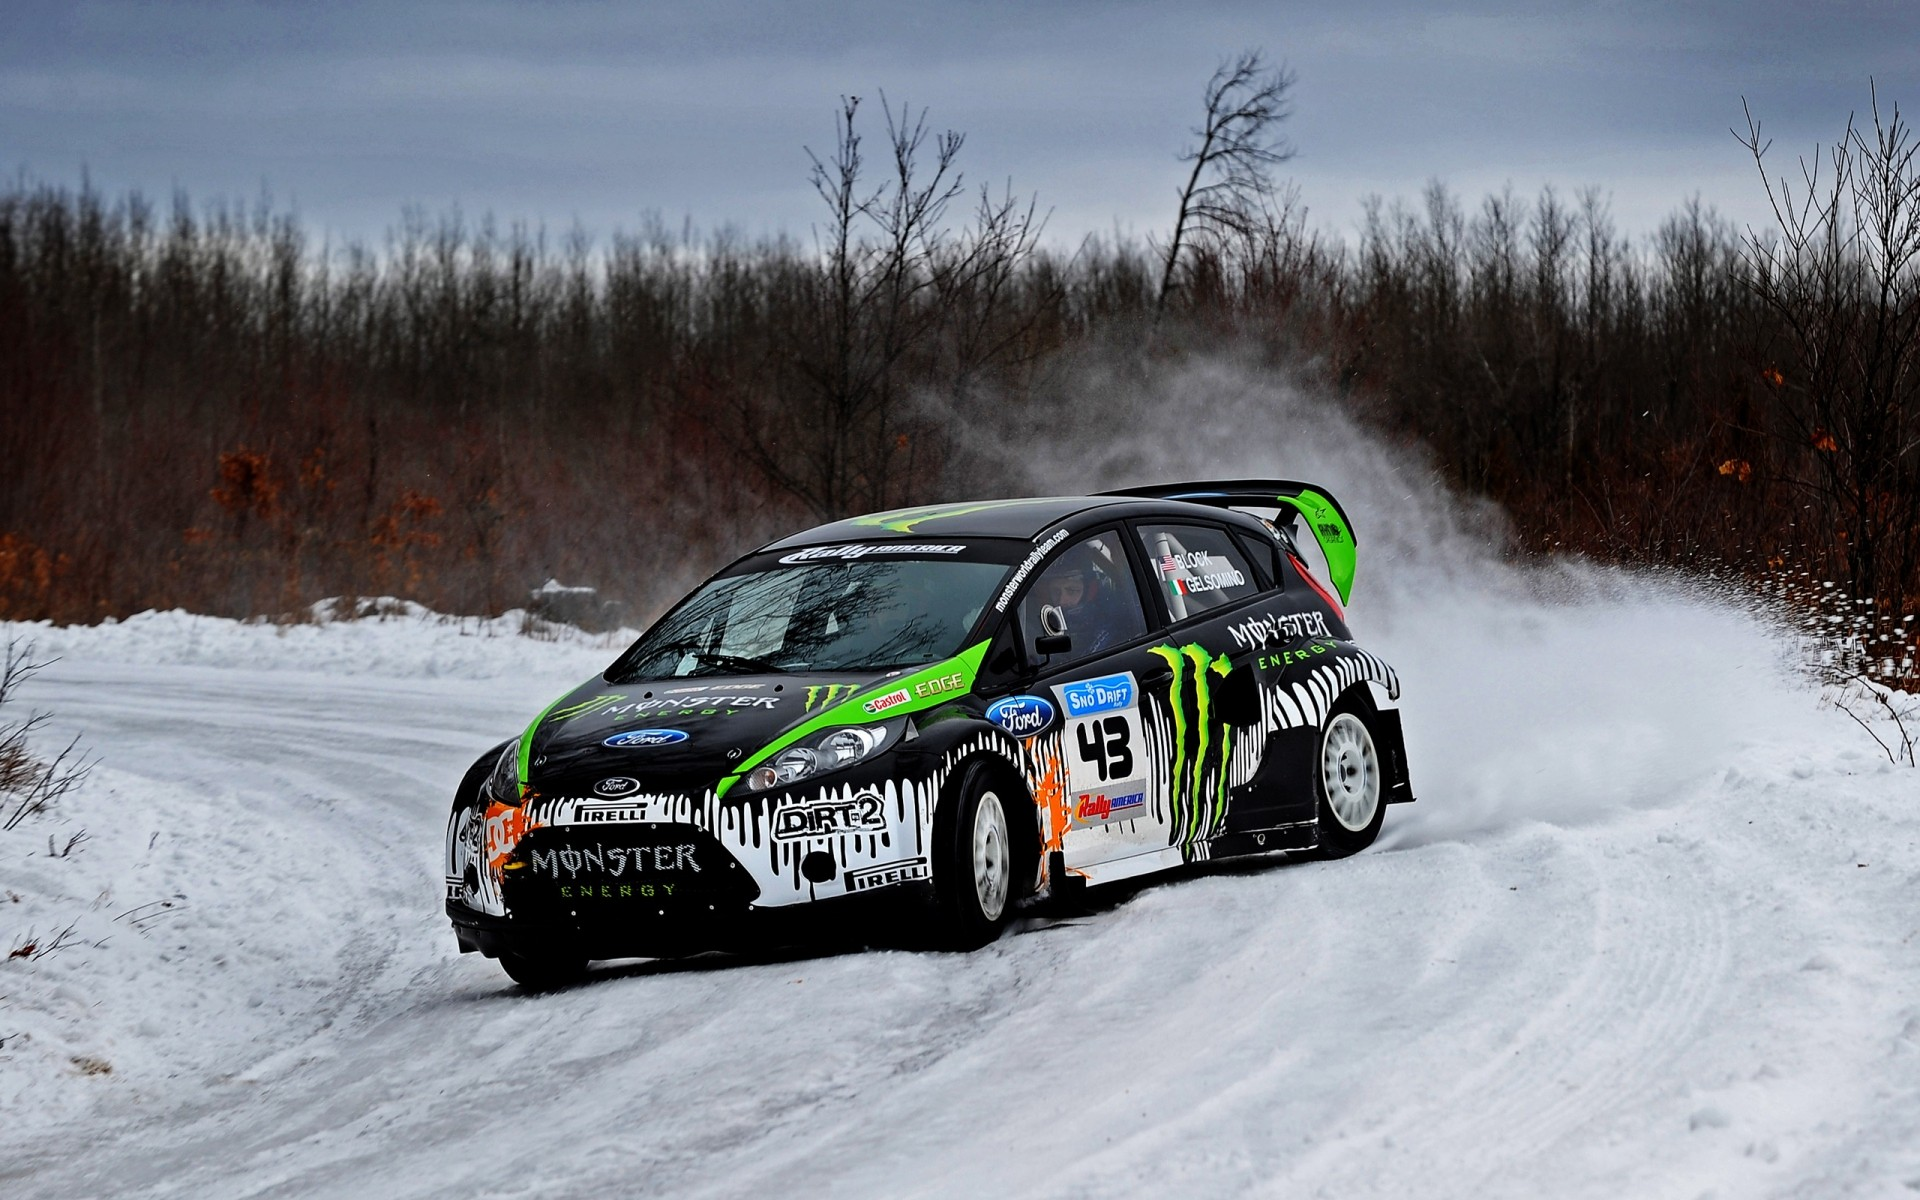 ford snow winter race drift track competition ice hurry vehicle action cold car sport fast weather rally ford fiesta